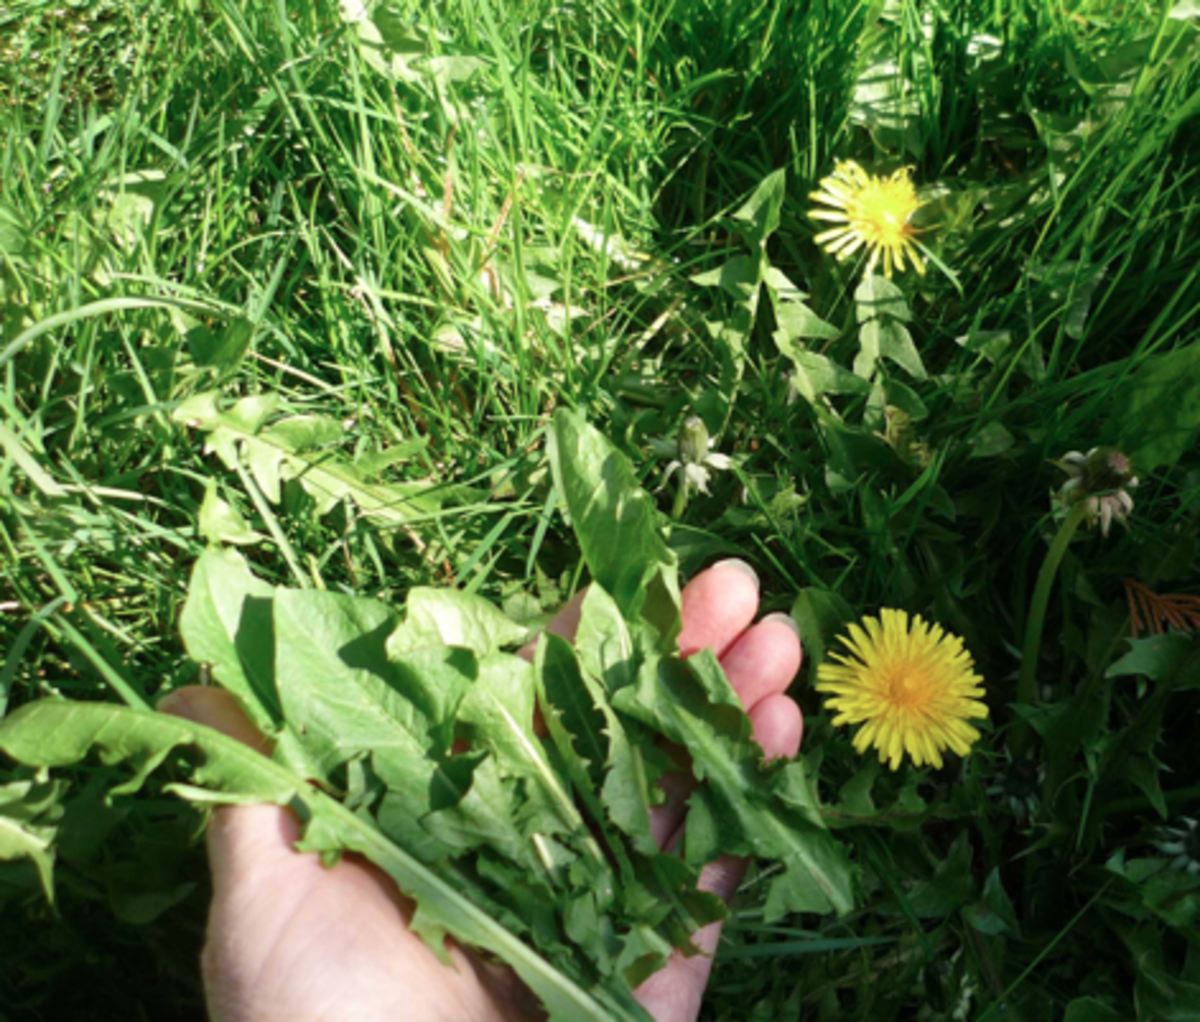 Making dandelion tea by gathering fresh plants is a good exercise.